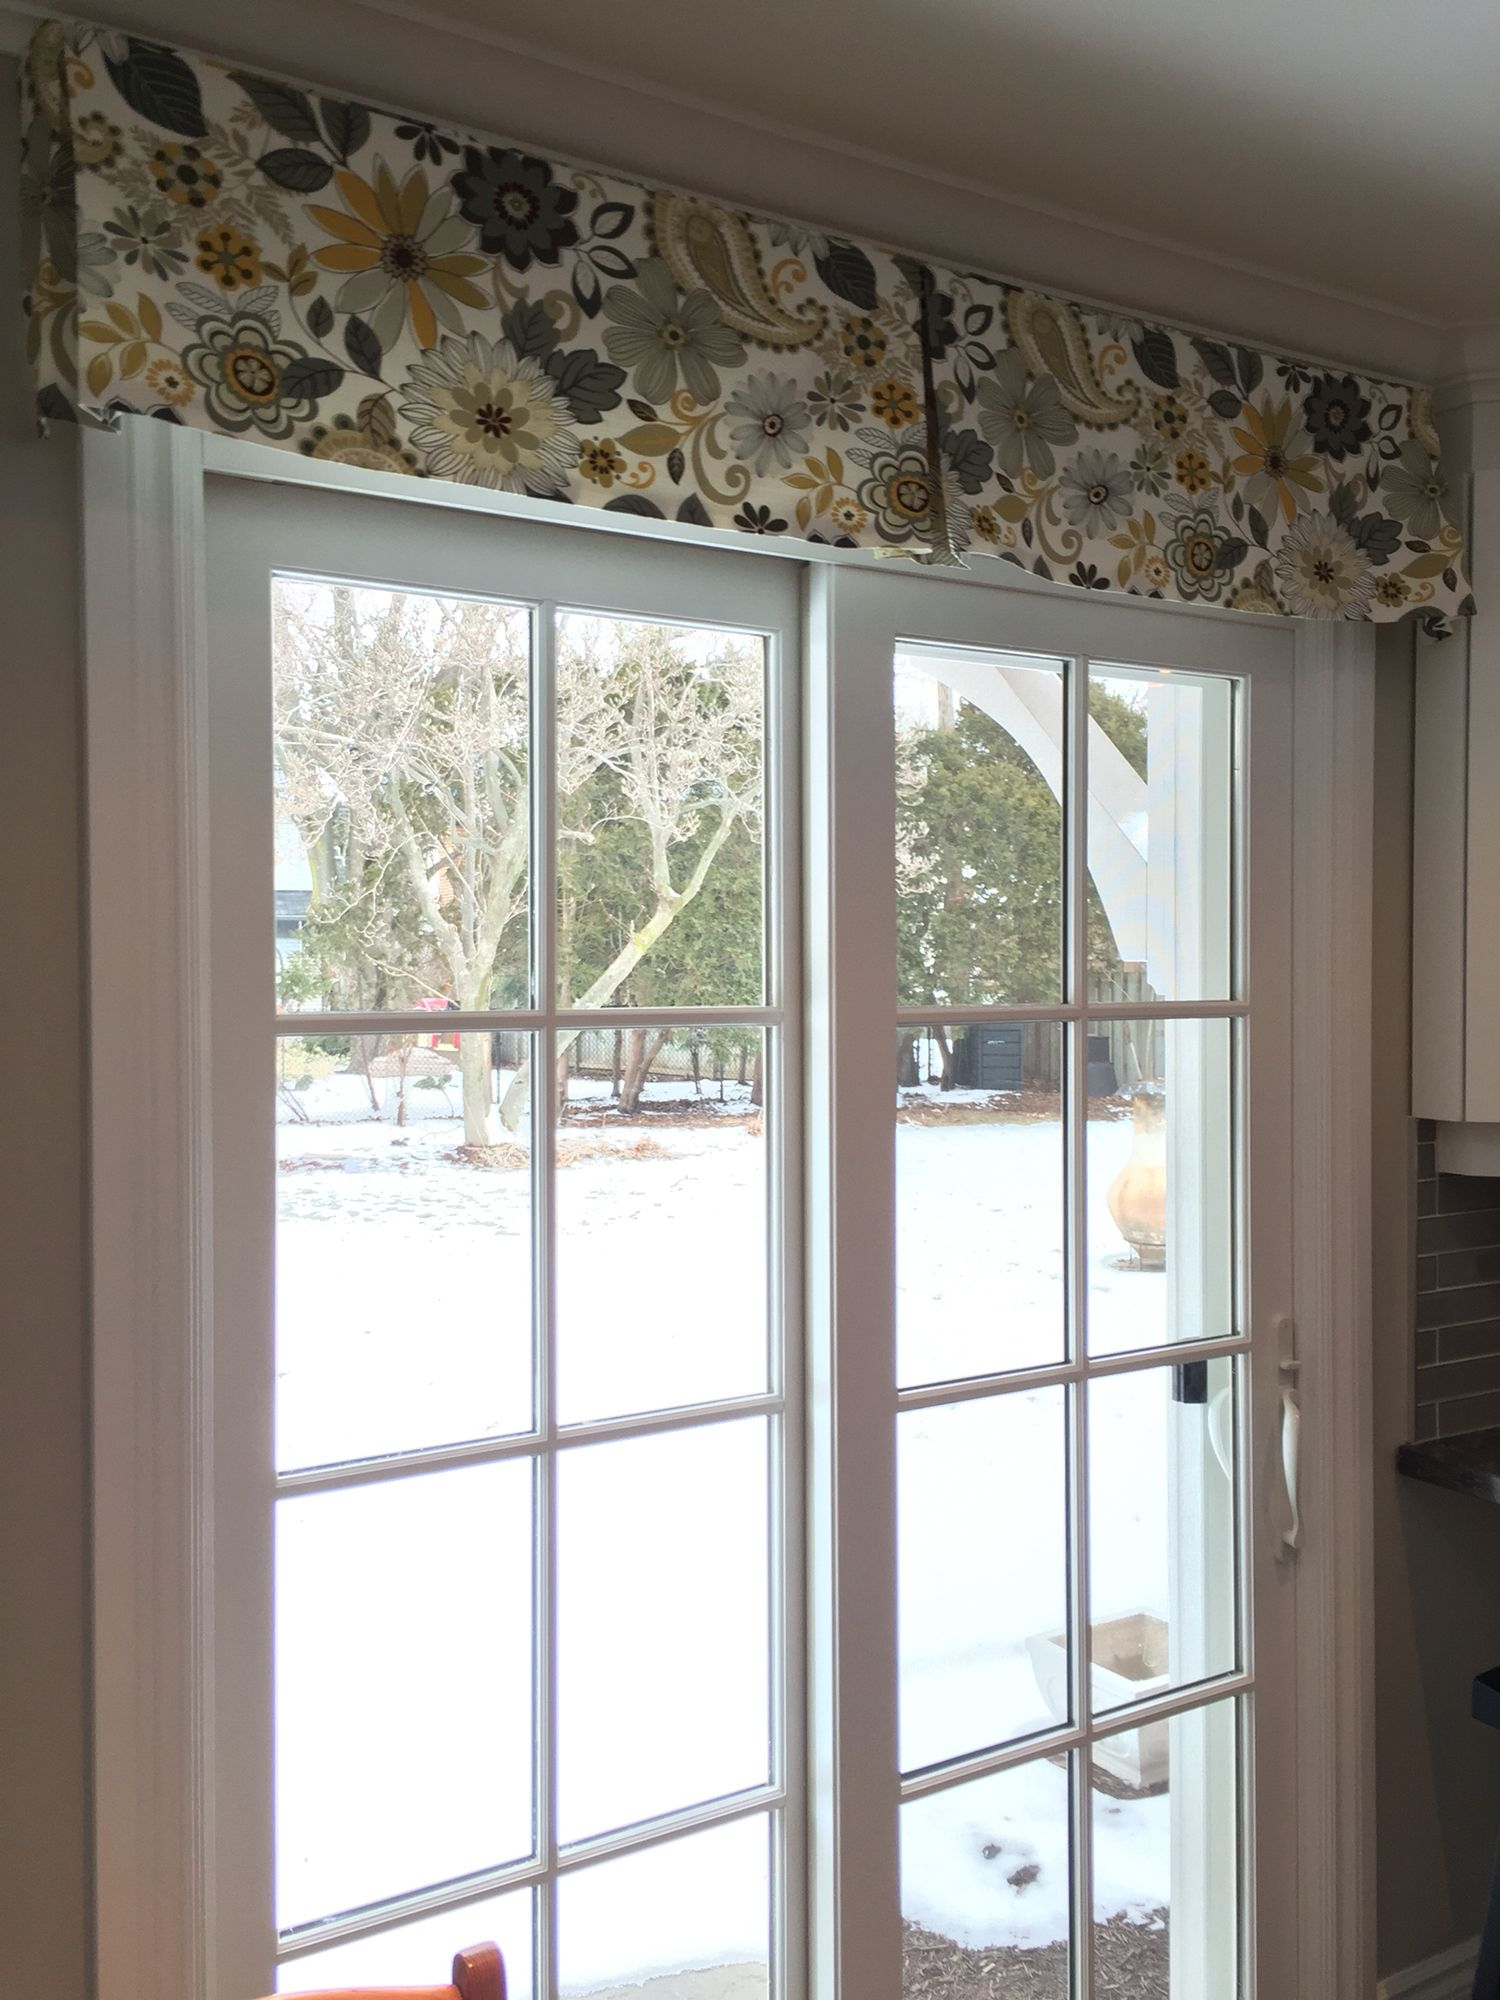 Patio Door Window Treatment. Using A Simple Decorative Box Pleat Valance In  A Fun Fabric